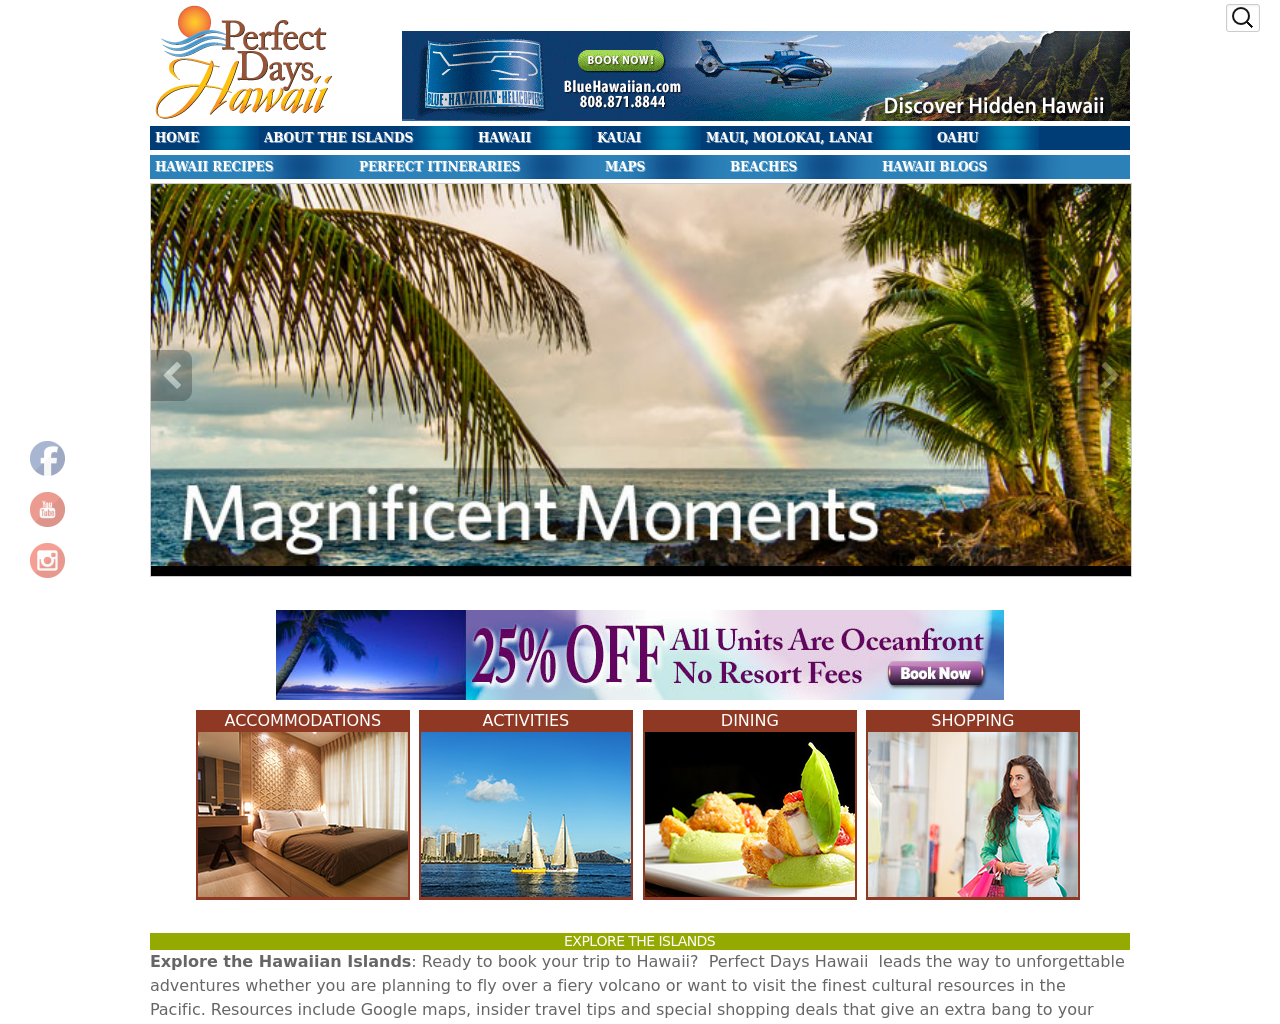 Perfect-Days-Hawaii-Advertising-Reviews-Pricing